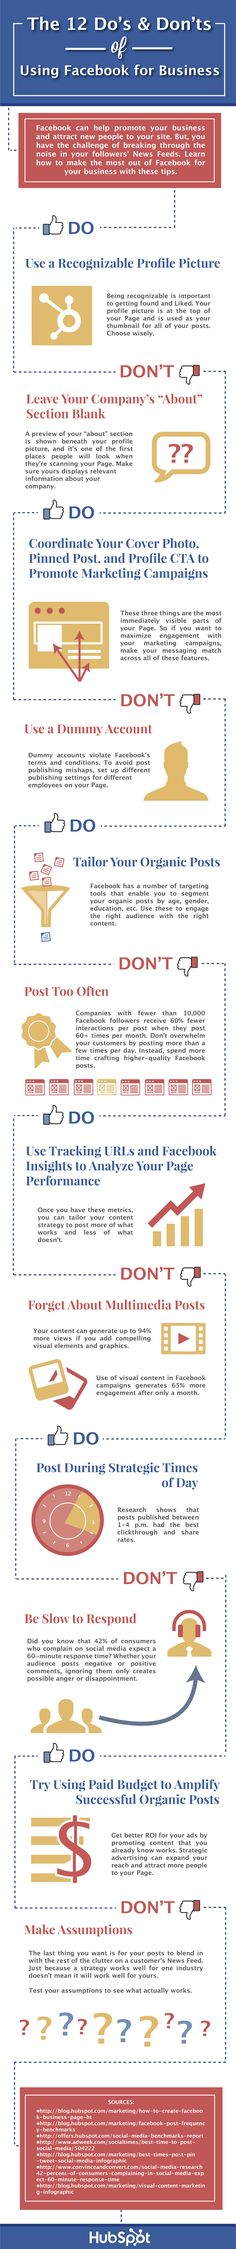 12 top tips for using Facebook to promote your work